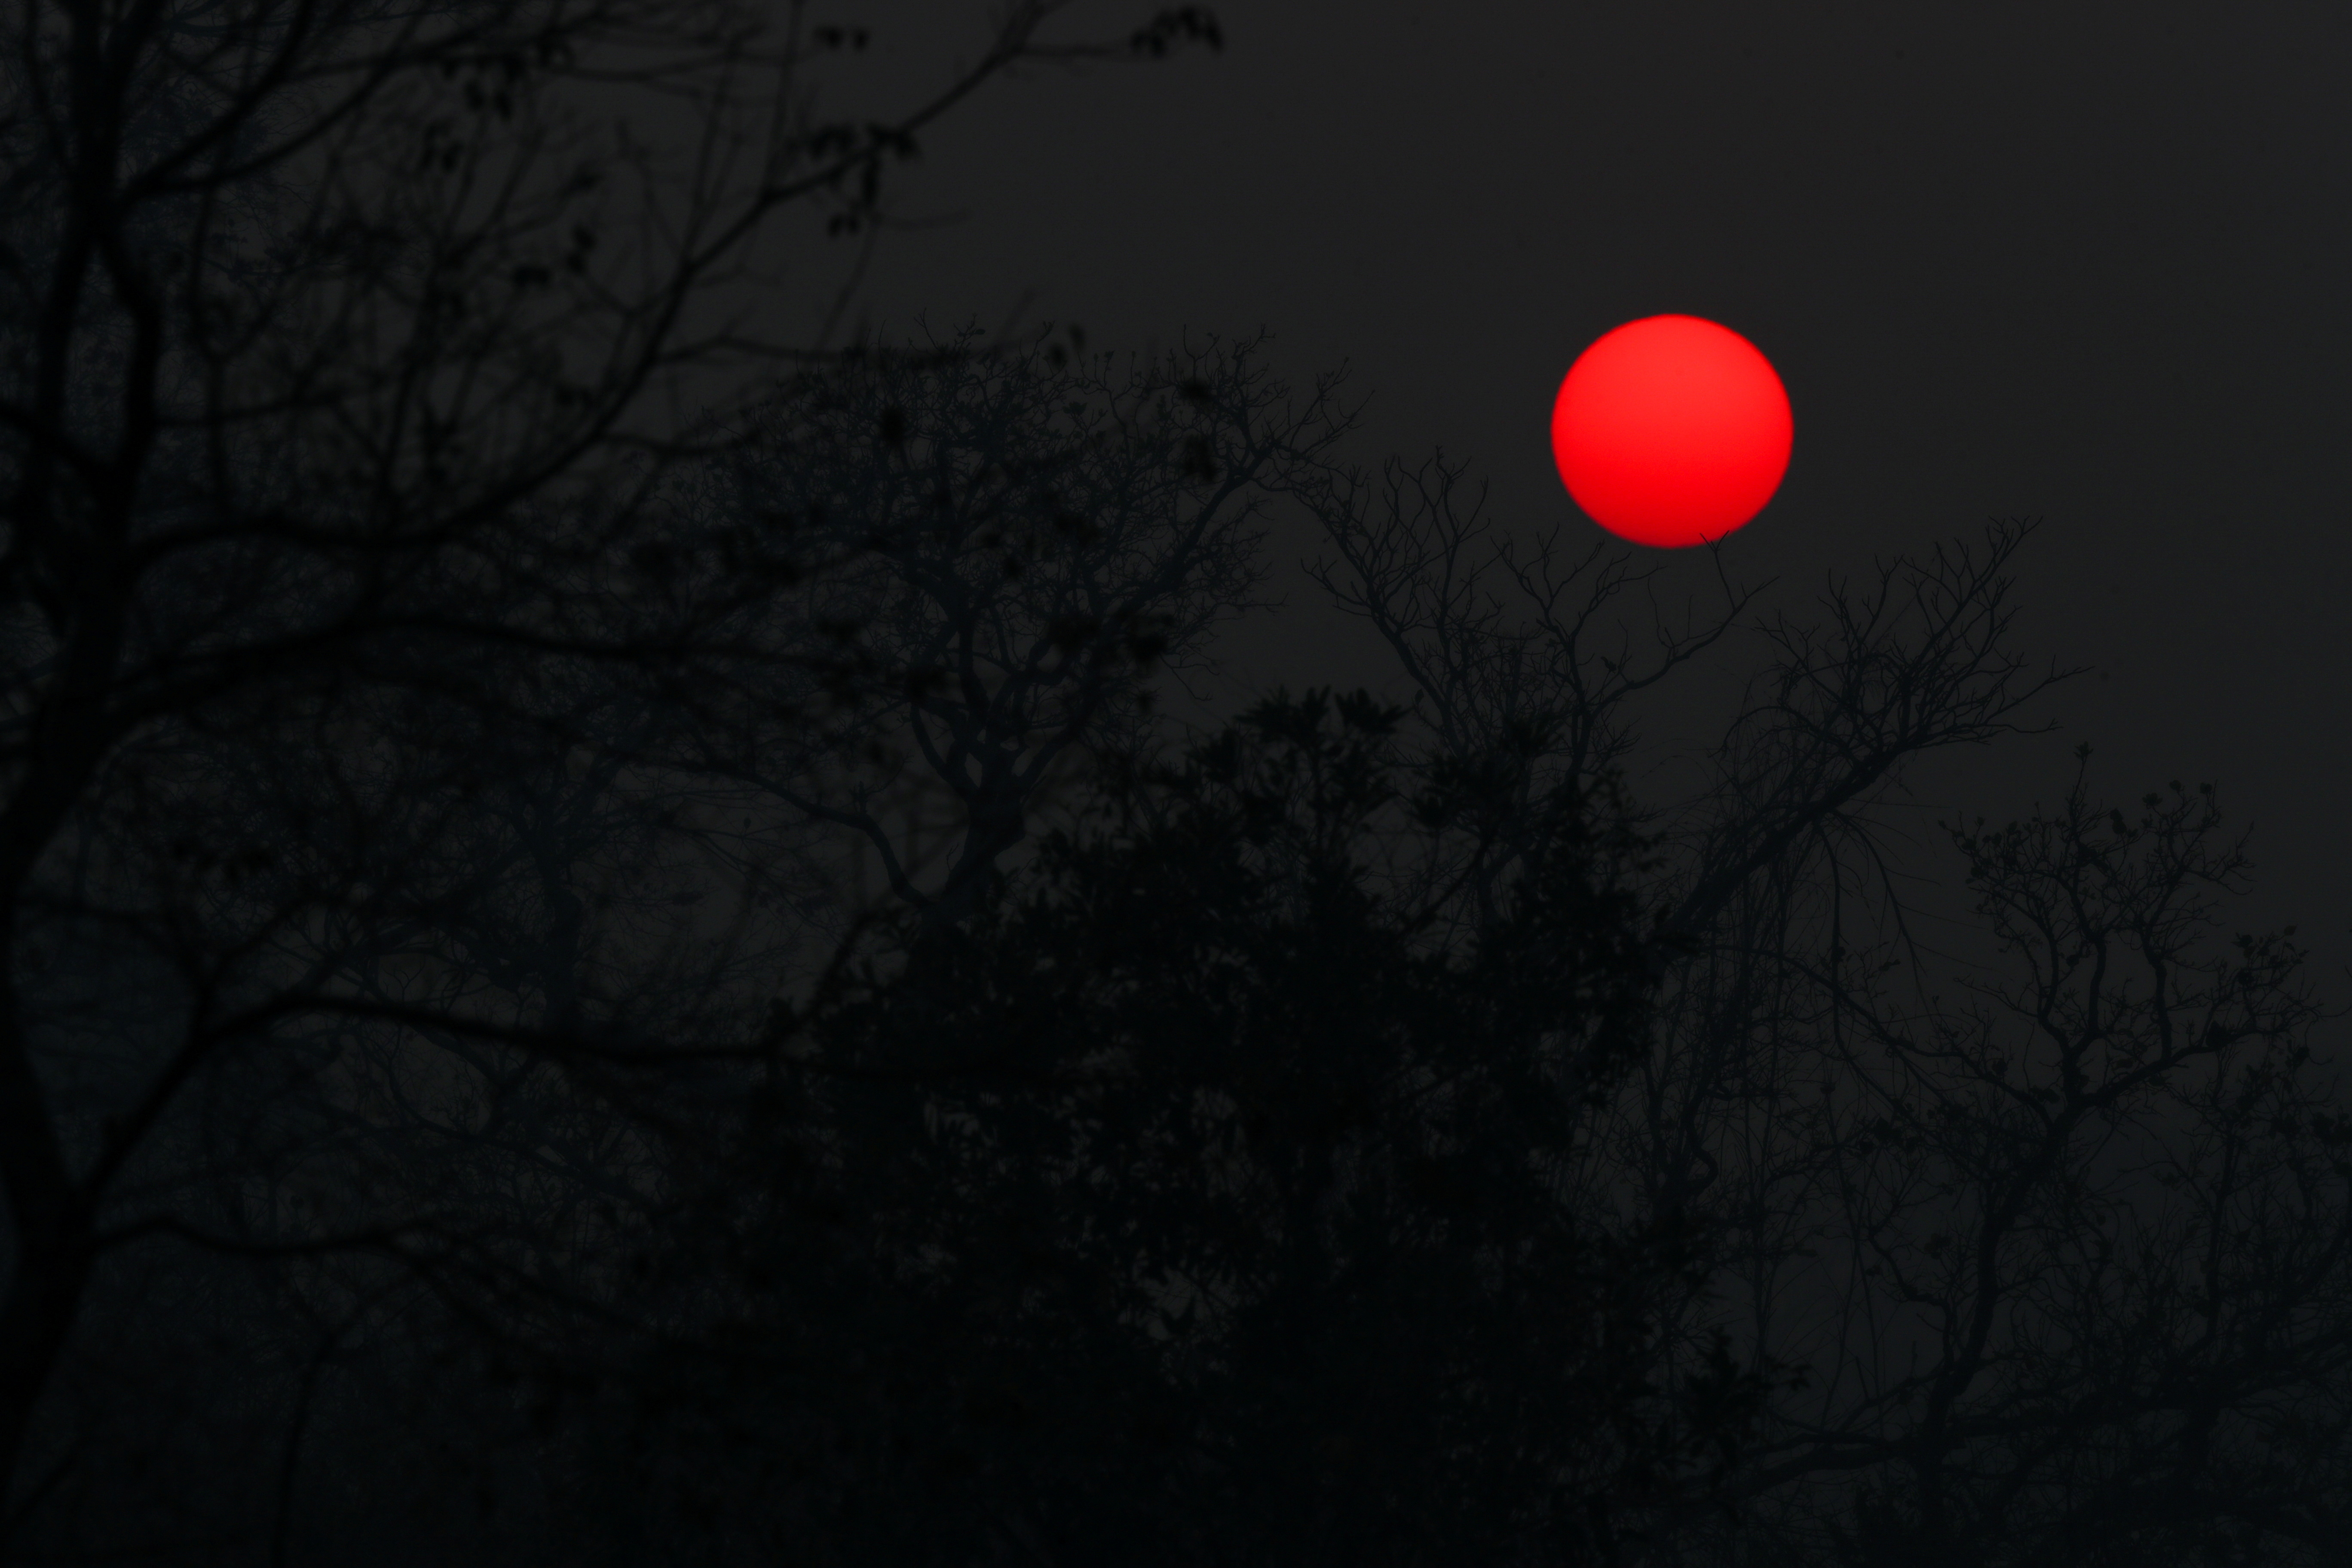 The sun rises above smoke from the burnt trees and vegetation in The Pantanal, the world's largest wetland, in Pocone, Mato Grosso state, Brazil, August 29, 2020. Picture taken August 29, 2020. REUTERS/Amanda Perobelli/File Photo